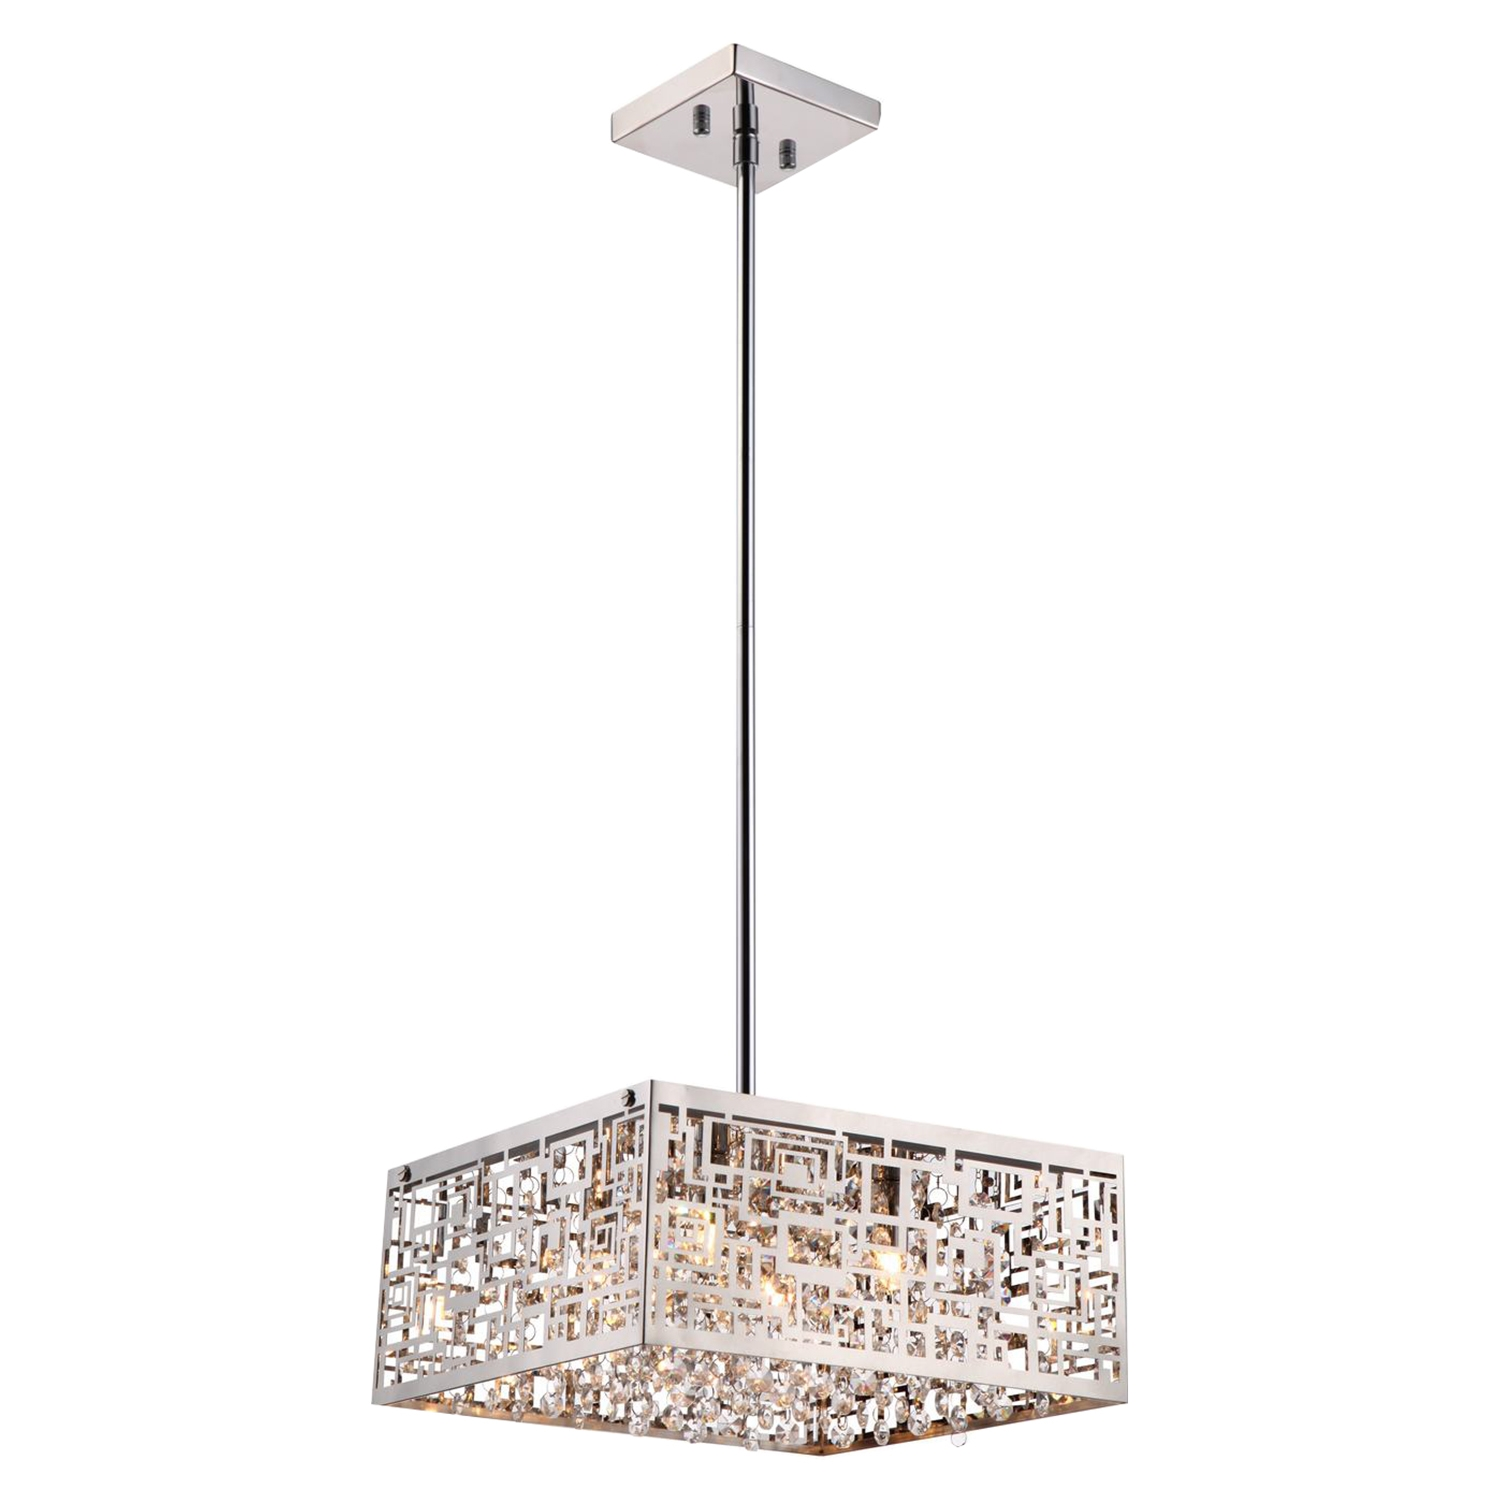 Metropolitan 4-Light Pendant - Chrome, Crystals - BROM-B8201S